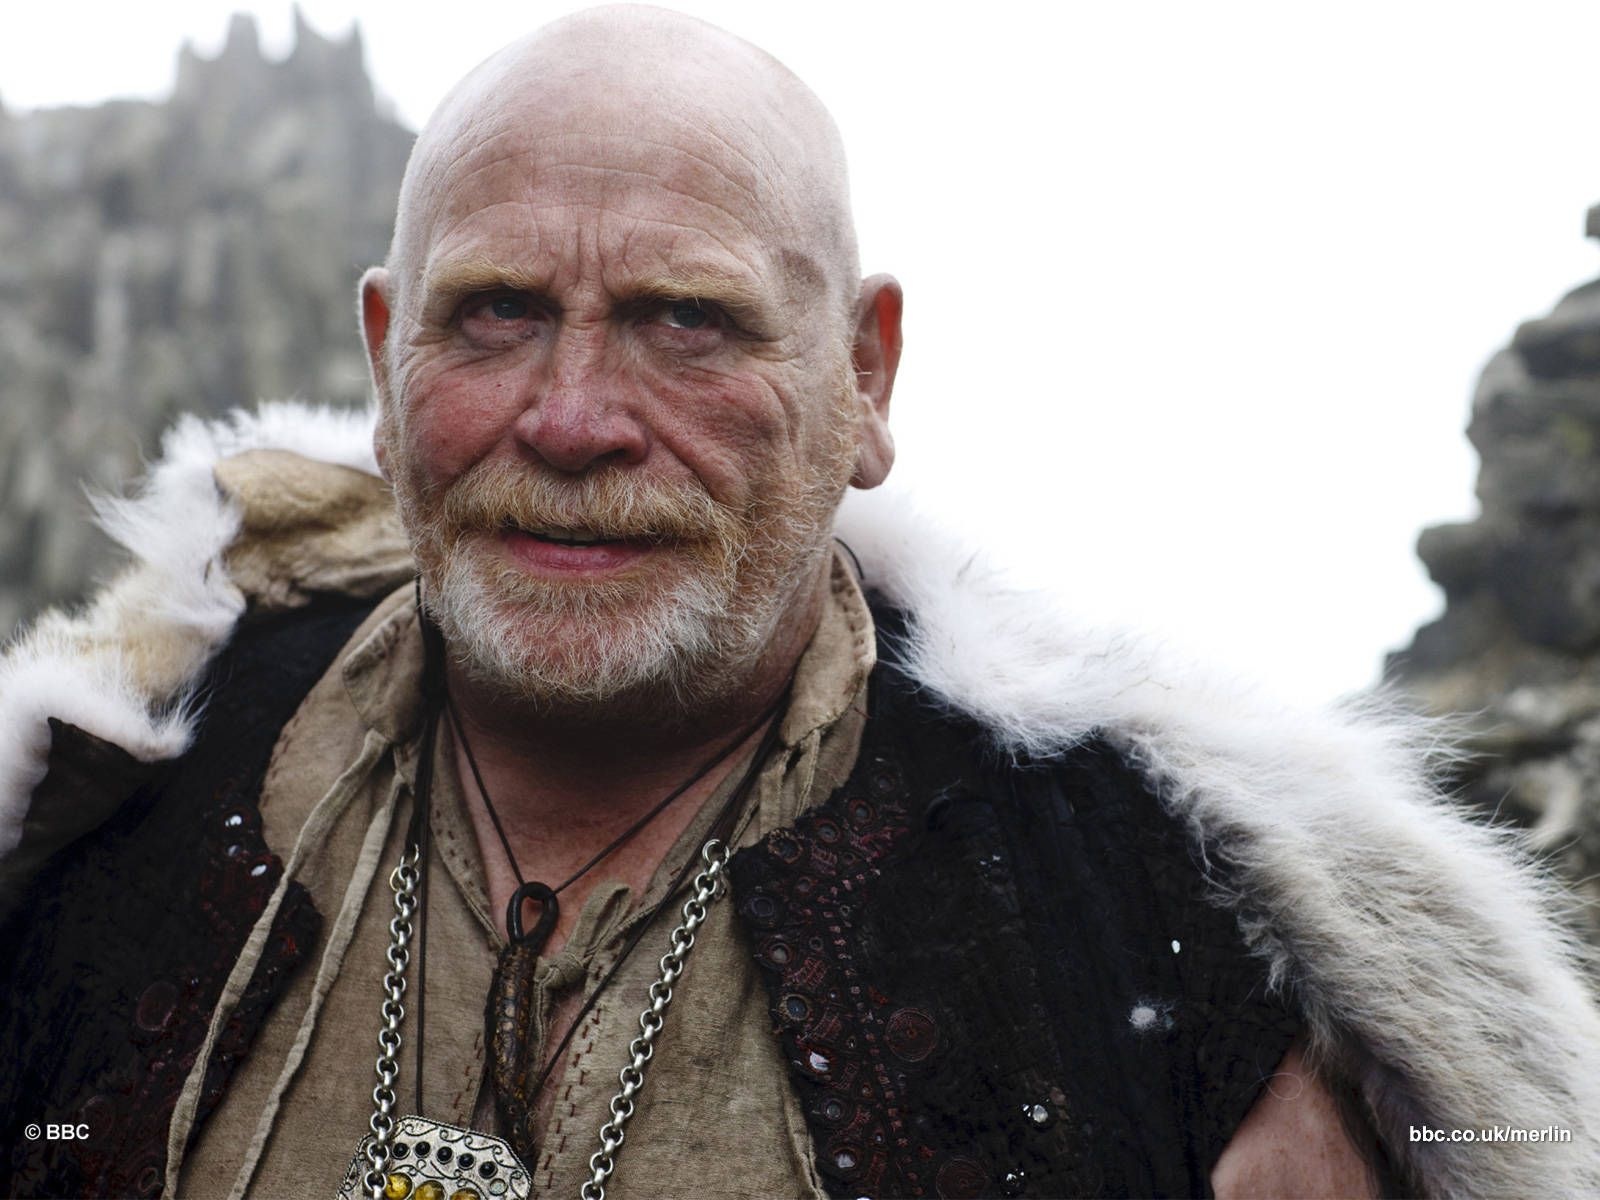 james cosmo instagramjames cosmo 2016, james cosmo troy, james cosmo height weight, james cosmo instagram, james cosmo facebook, james cosmo photo, james cosmo actor, james cosmo images, james cosmo films, james cosmo 2017, james cosmo game of thrones, james cosmo twitter, james cosmo braveheart, james cosmo wiki, james cosmo wife, james cosmo imdb, james cosmo net worth, james cosmo movies and tv shows, james cosmo sons of anarchy, james cosmo trainspotting